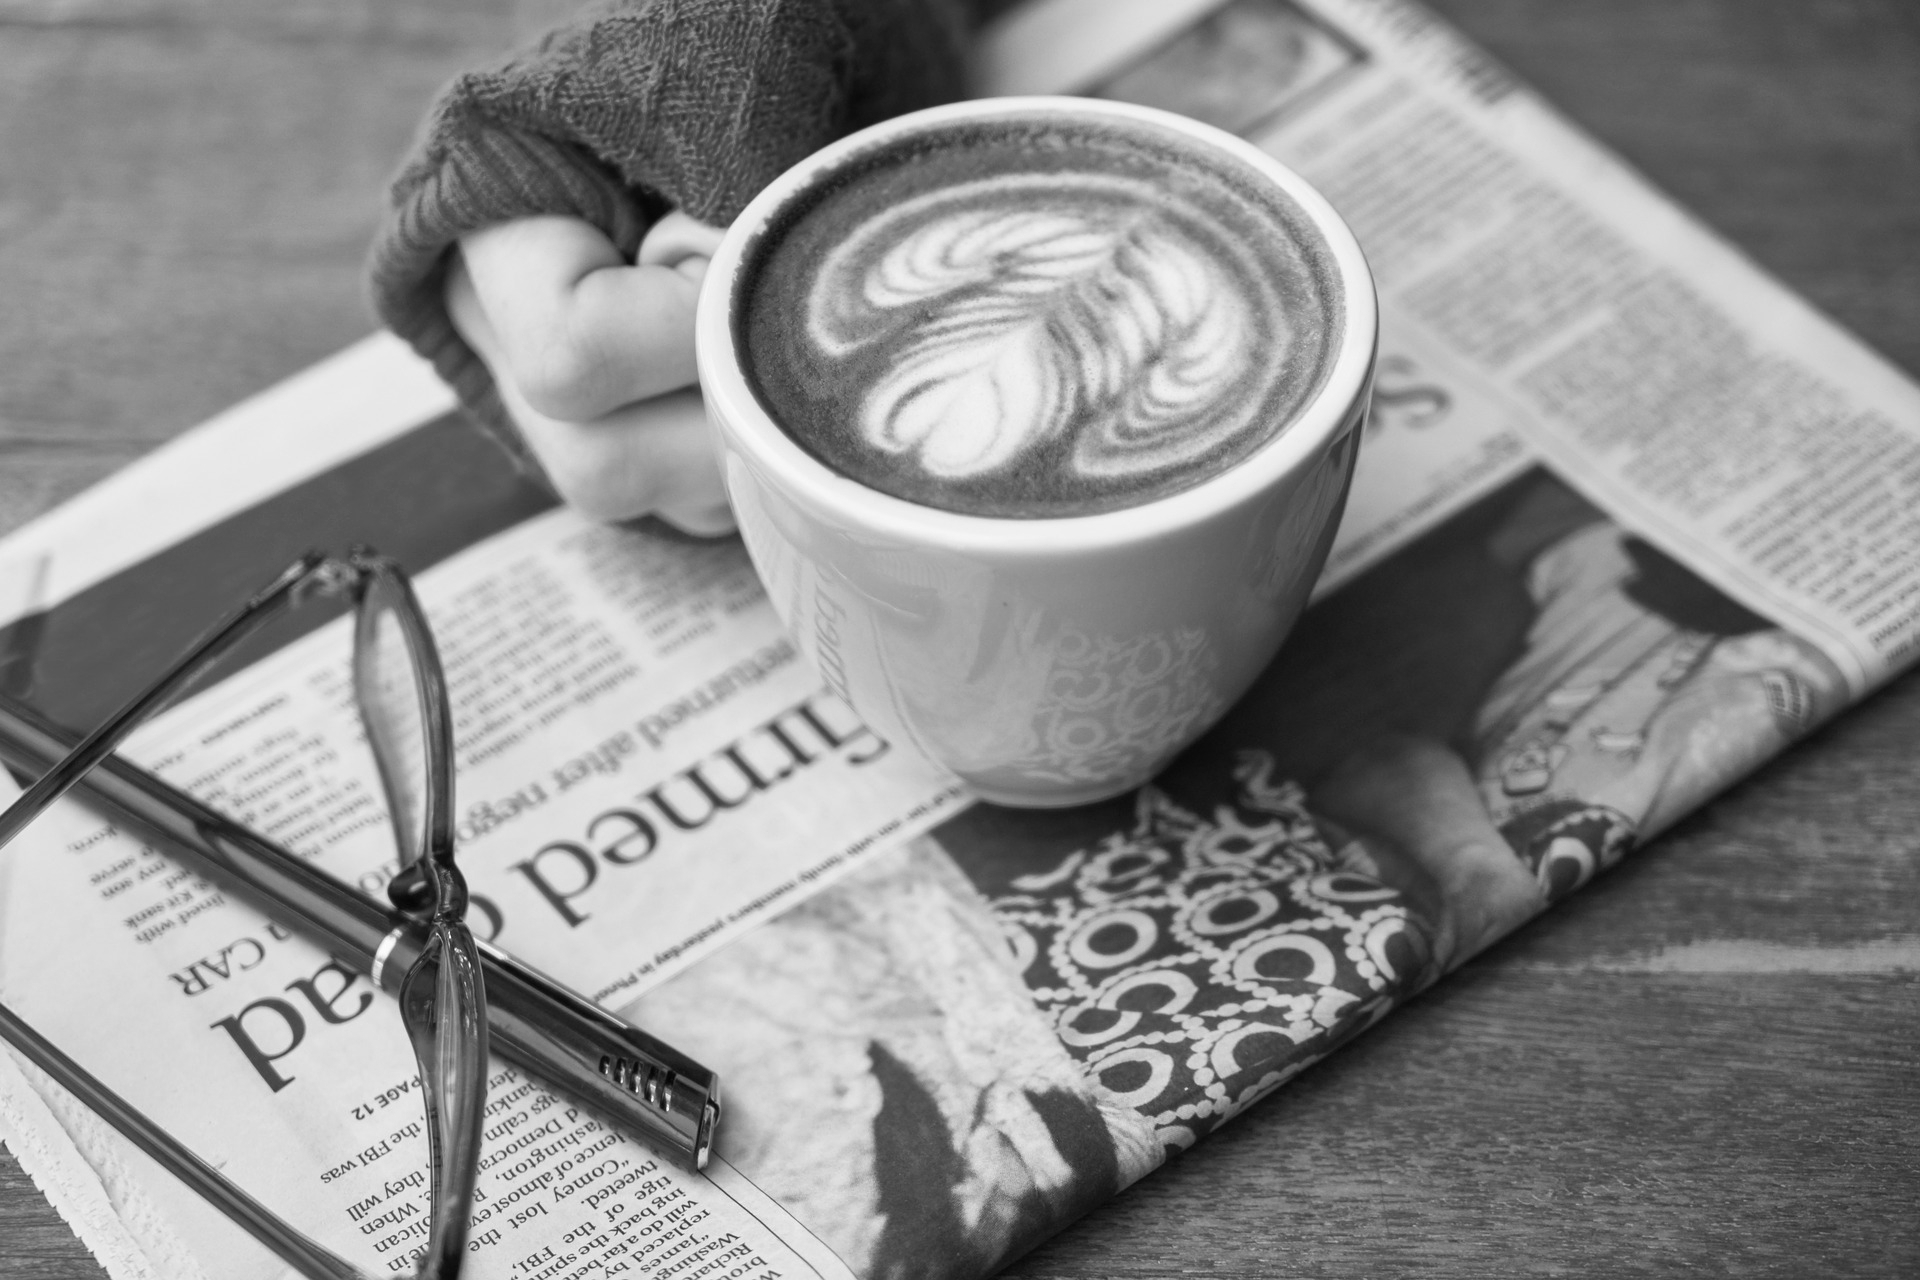 A hand holds a latte resting on a newspaper.